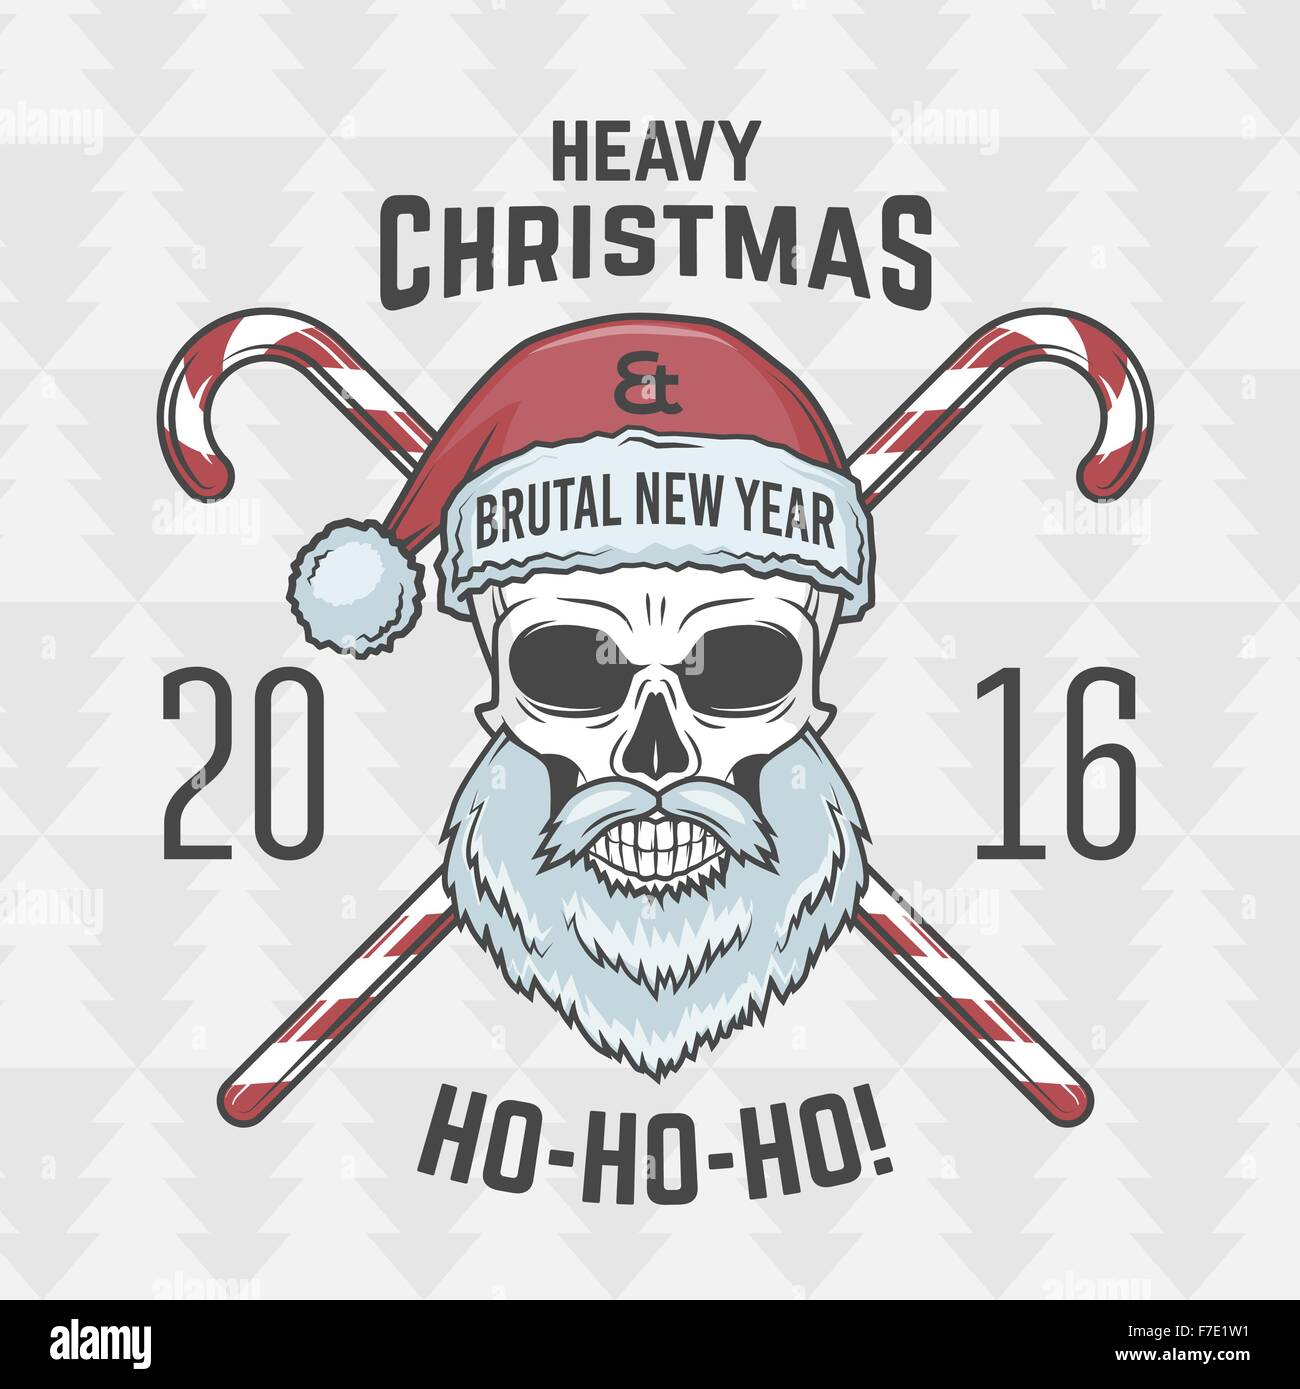 Heavy Metal Christmas.Bad Santa Claus Biker With Candies Print Design Vintage